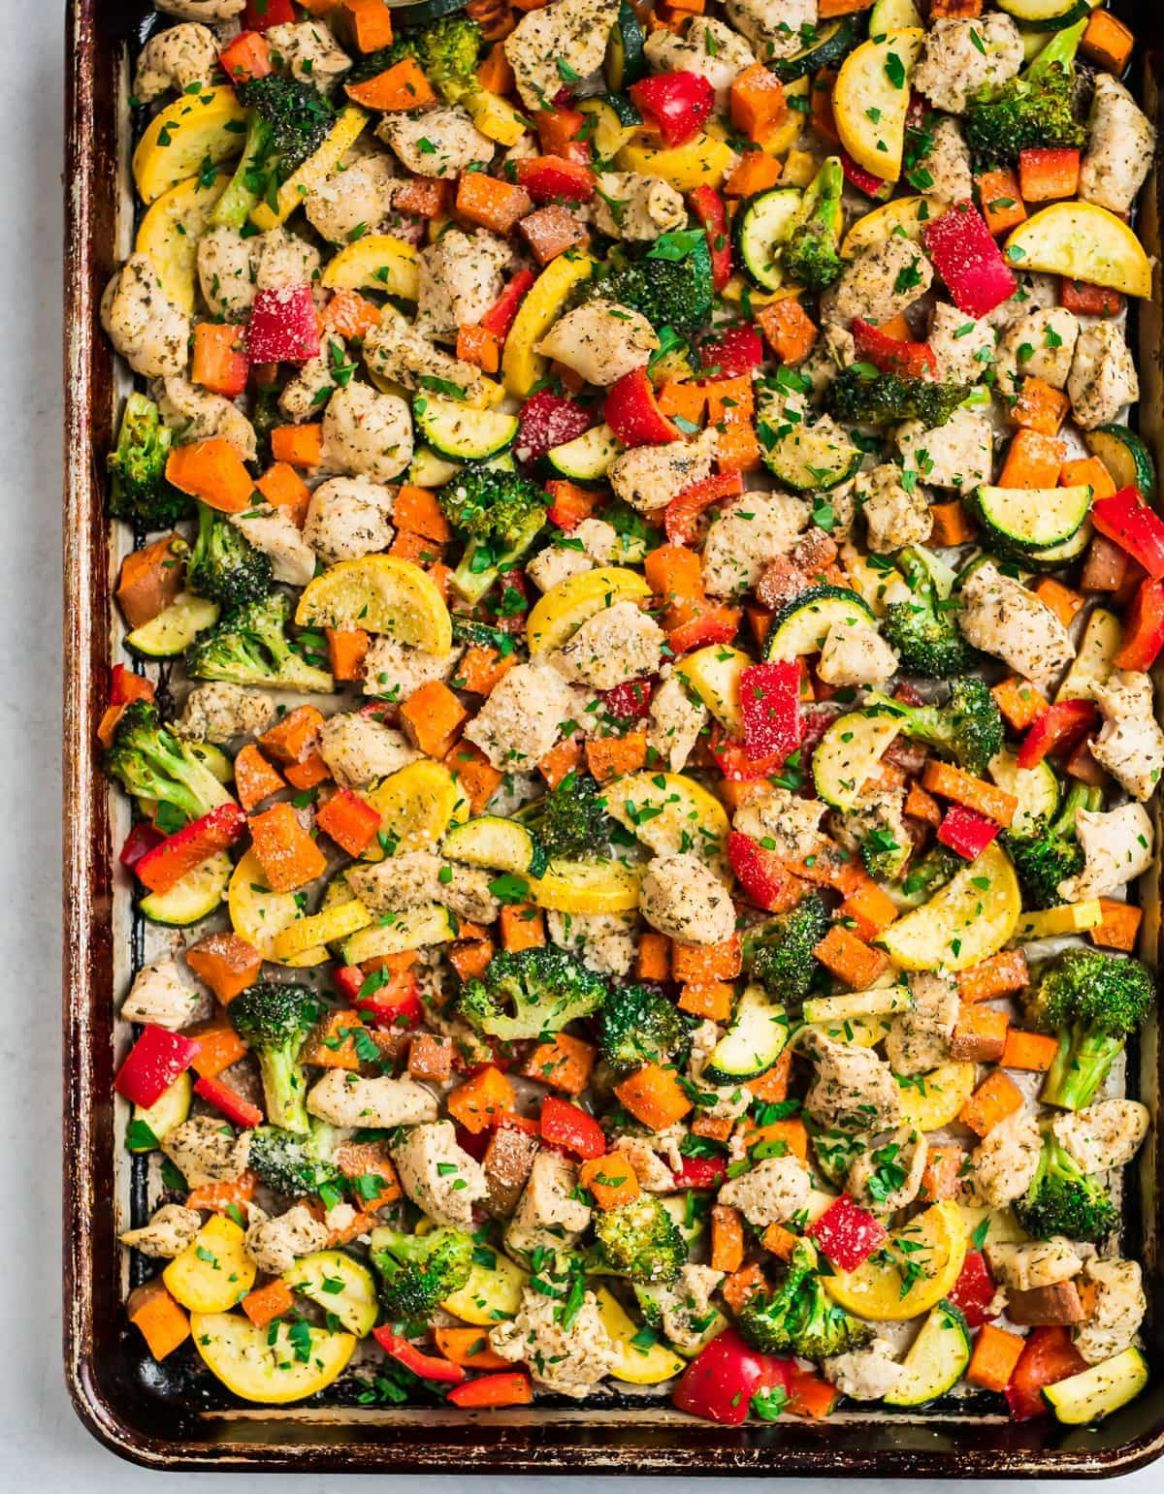 Sheet Pan Chicken and Rainbow Vegetables - Recipes Chicken Vegetables